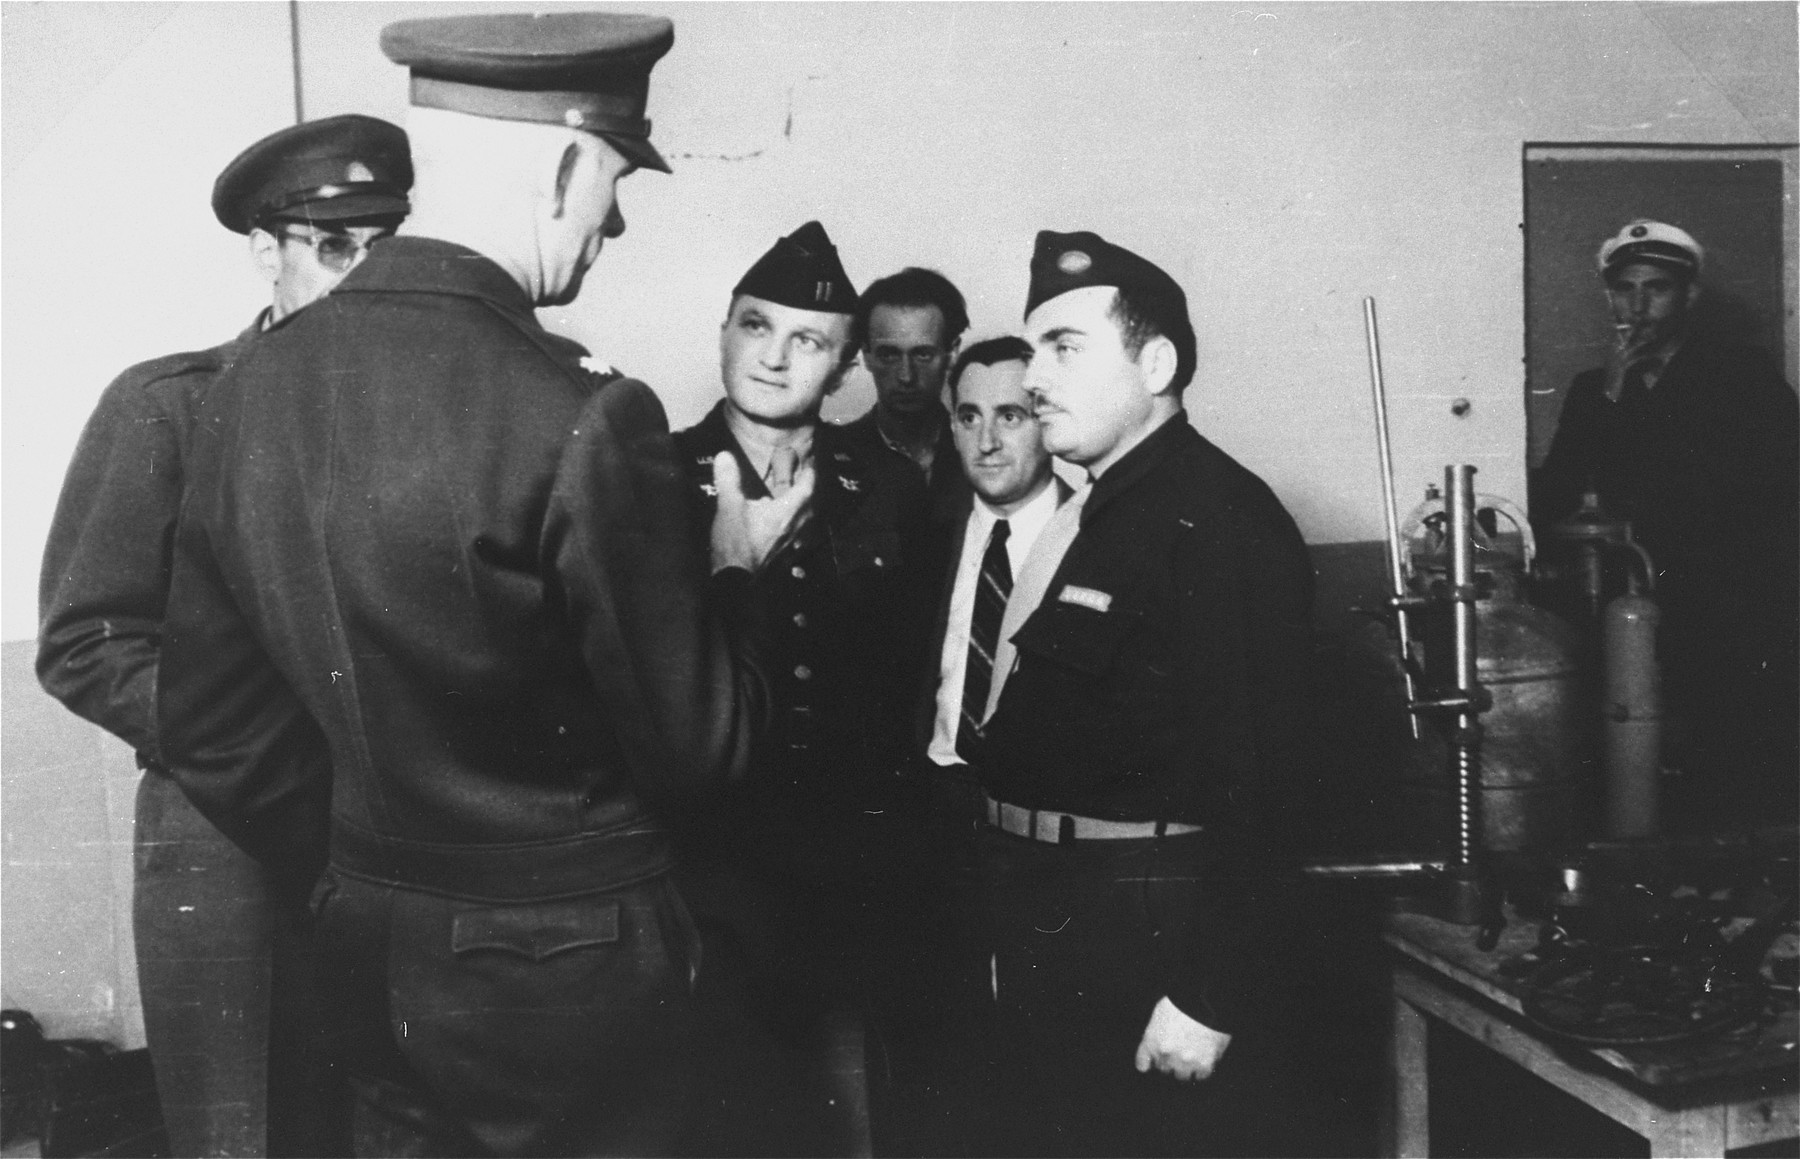 Members of the US army visit the Zeilsheim displaced persons camp.  Among those pictured are Sidney Flatow, UNRRA director of the Zeilsheim displaced persons camp, on the right and David Greenbaum, seen in the doorway smoking.   Mr. Flatow later became the executive director of the American Federation of Polish Jews.